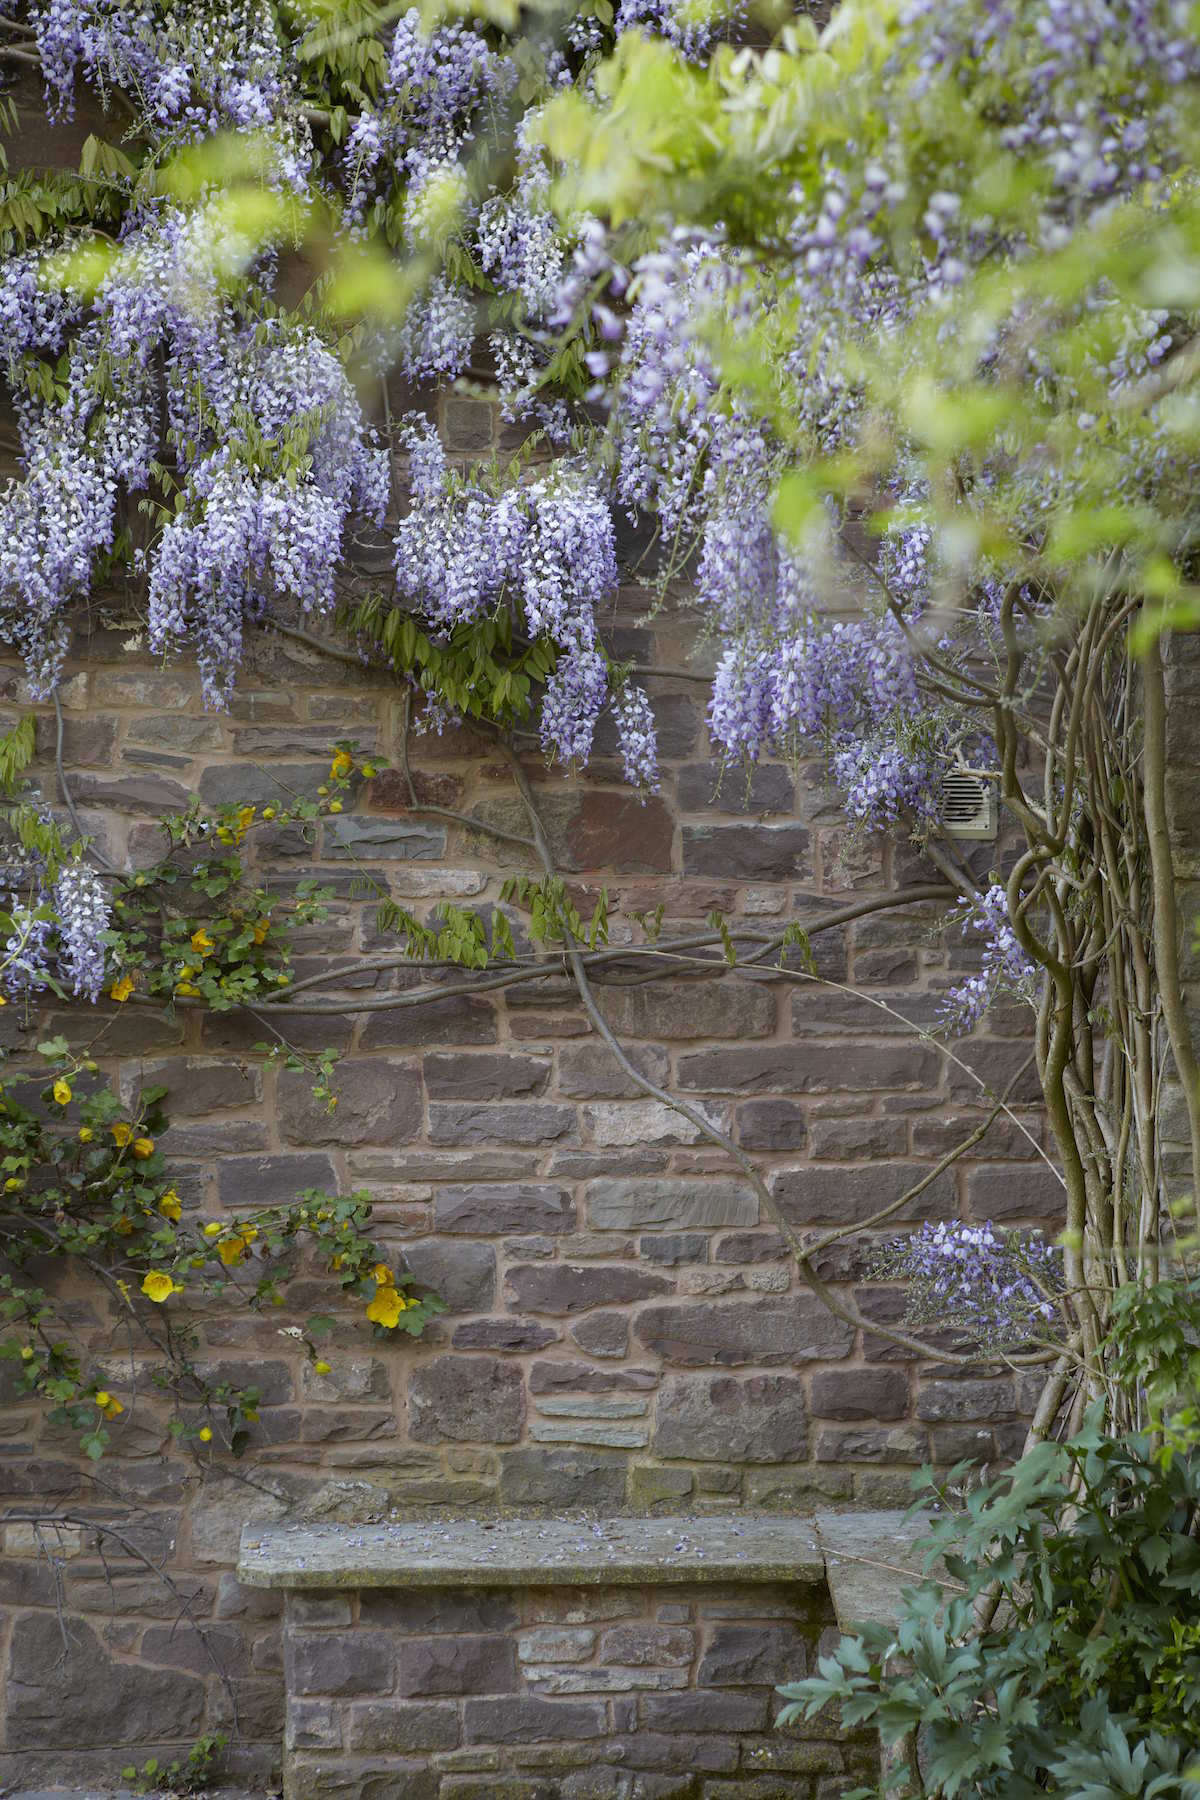 Whether you want a tree or a vine, you should prune wisteria each year to encourage it to bloom. And be patient: it can take two or three years of pruning to prompt it to bloom.